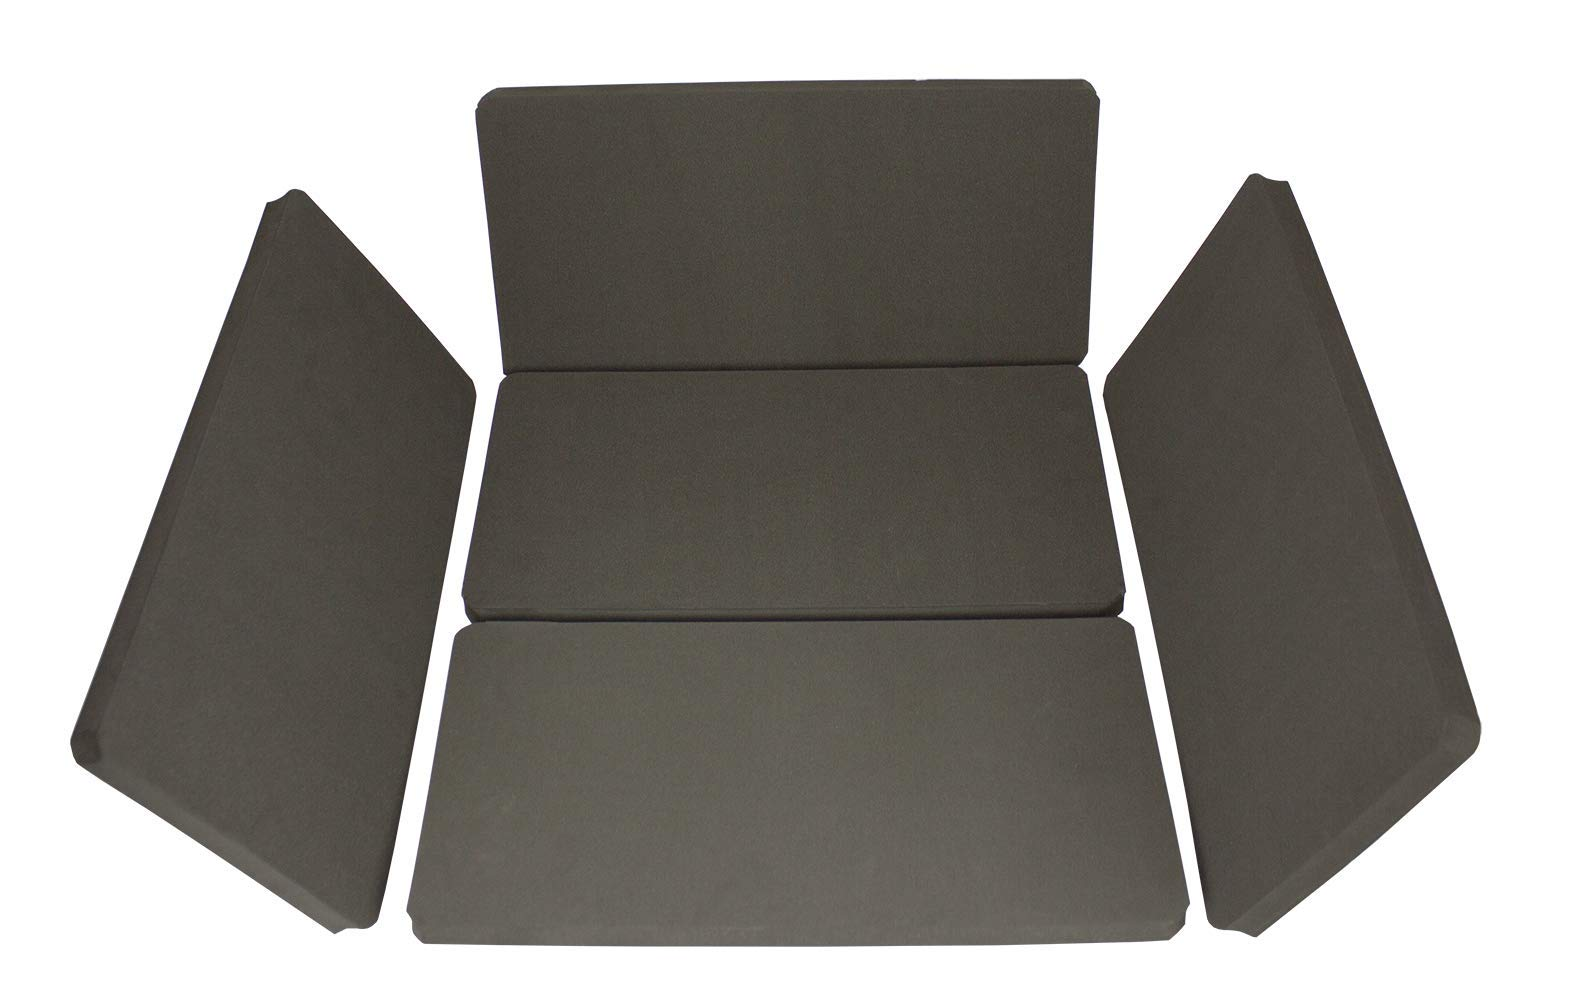 Global Safety 5 Pack Foam CPR Floor Mat with Convenient Carry Bag to Reduce Back and Knee Pain, 15.5'' x 8'' x 0.75''